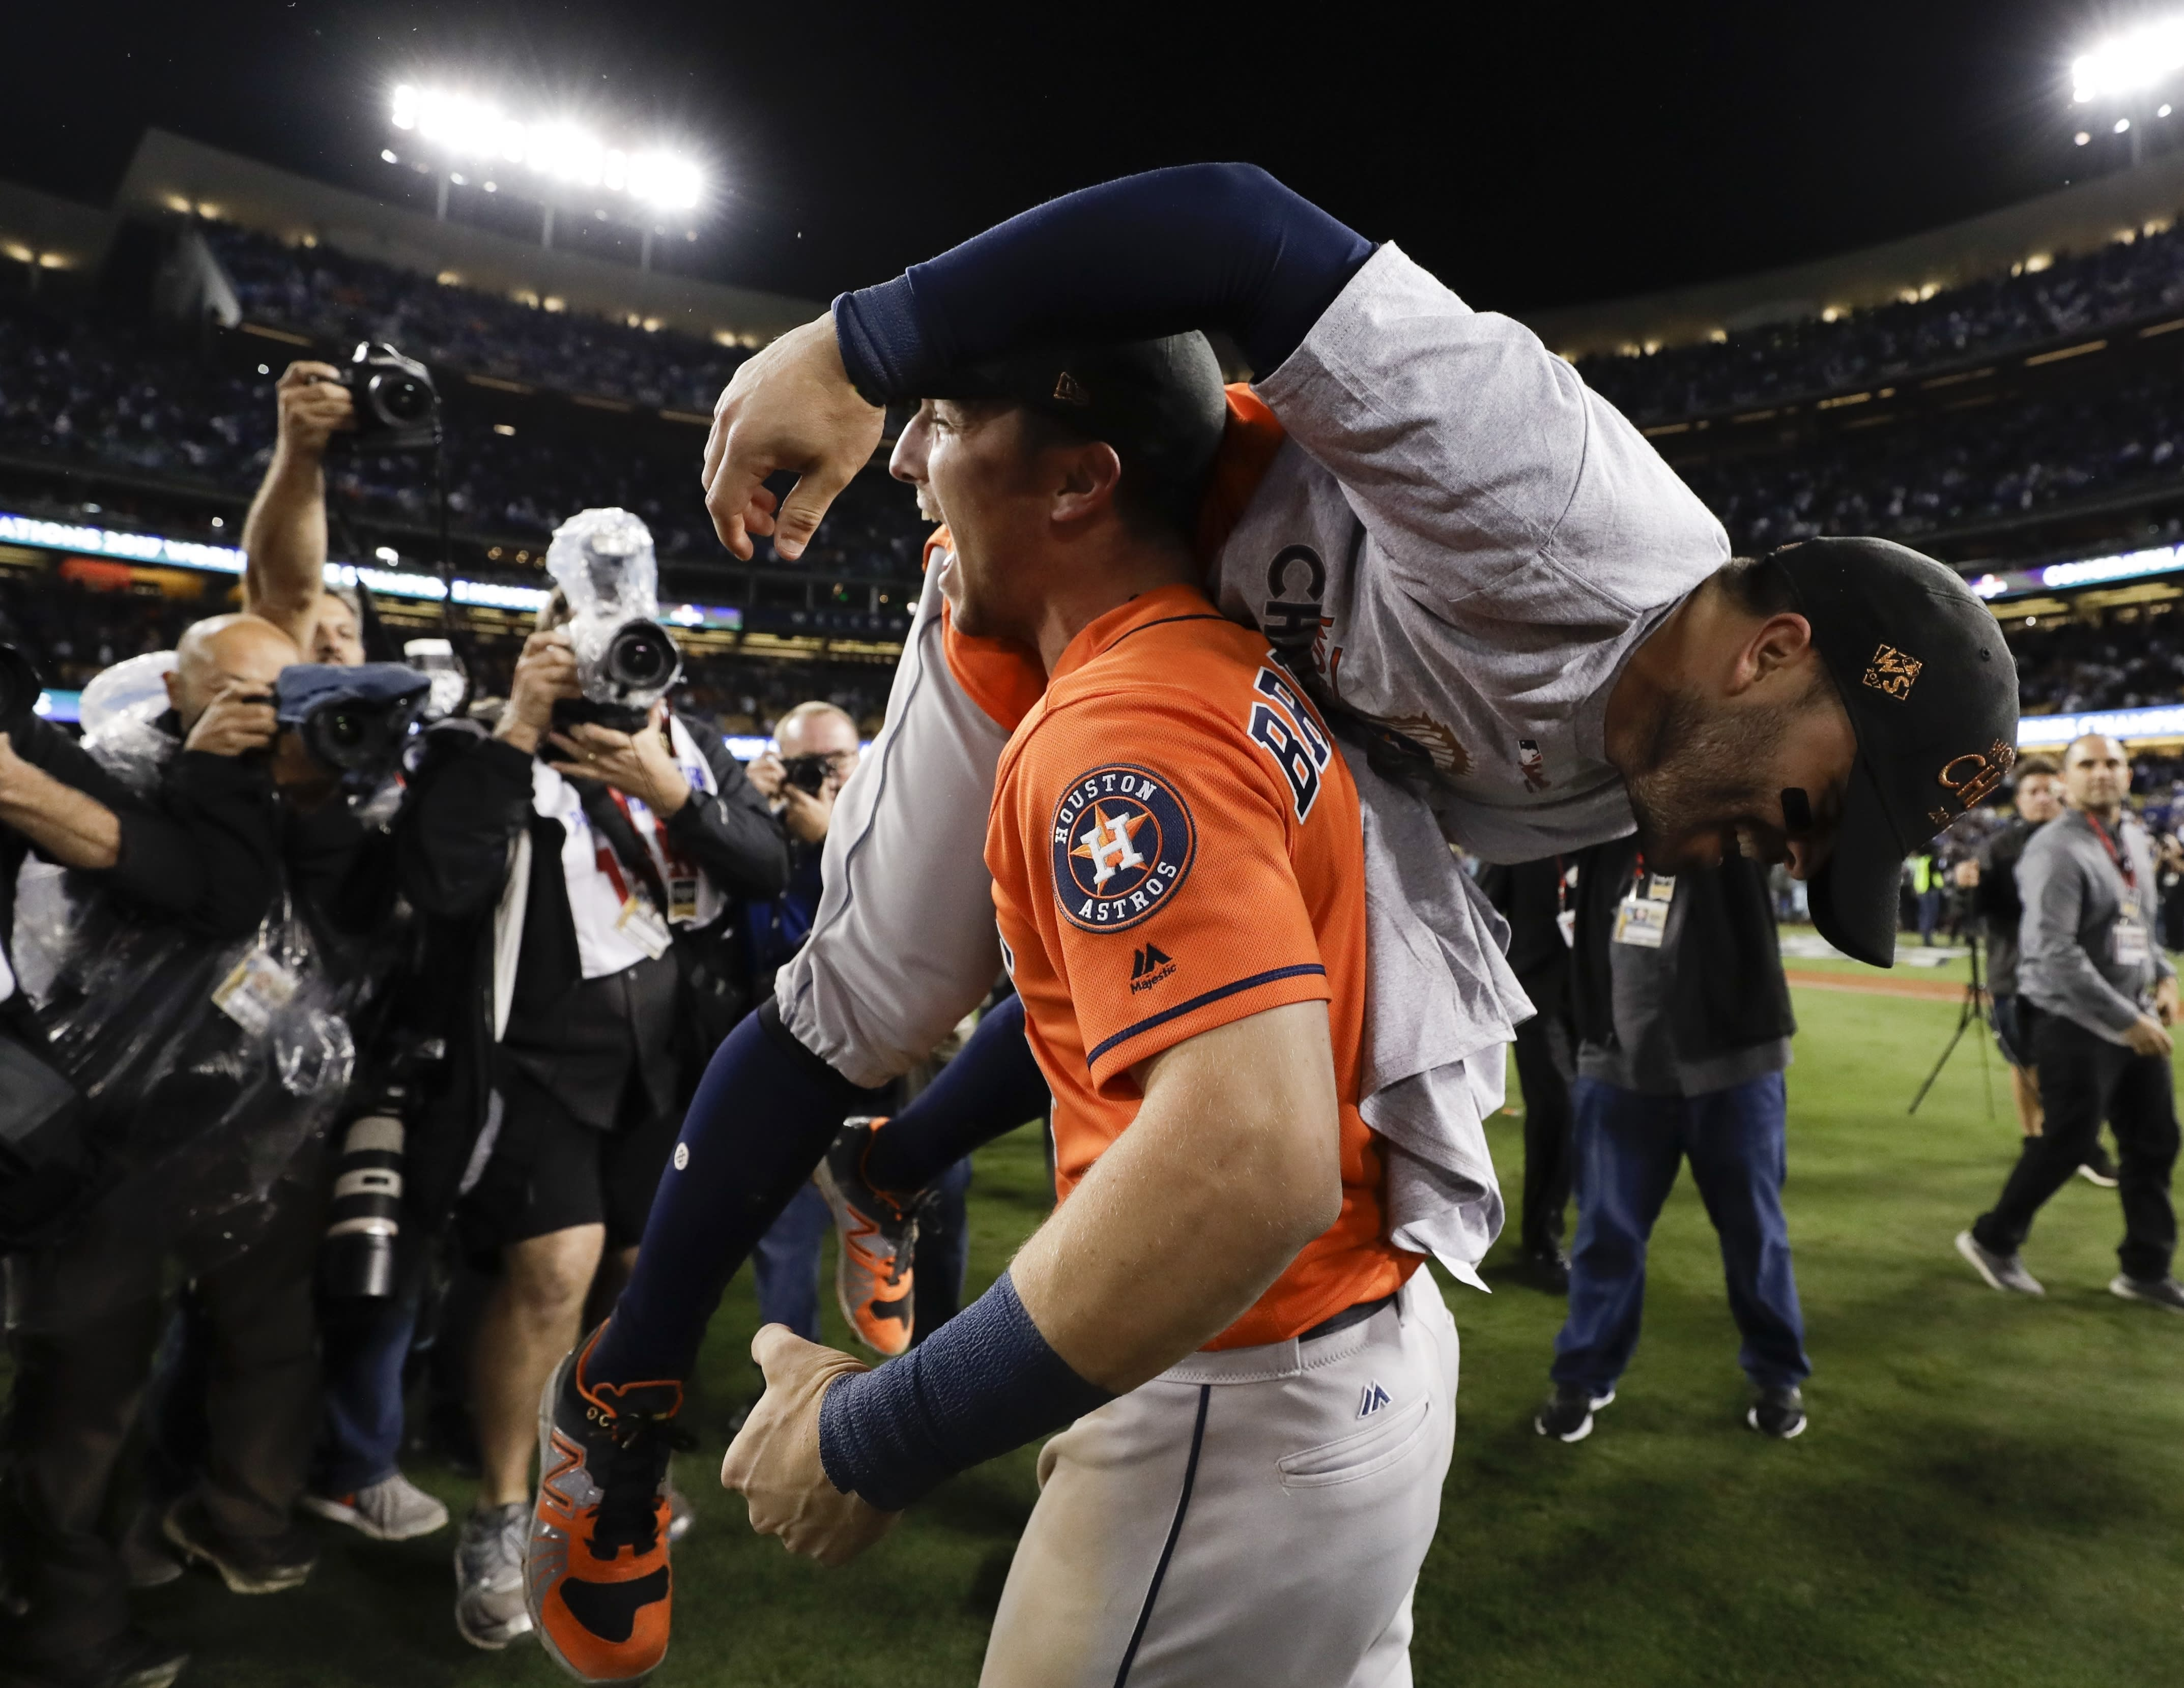 b72d12796a4 Astros win Game 7 over Dodgers to win first World Series